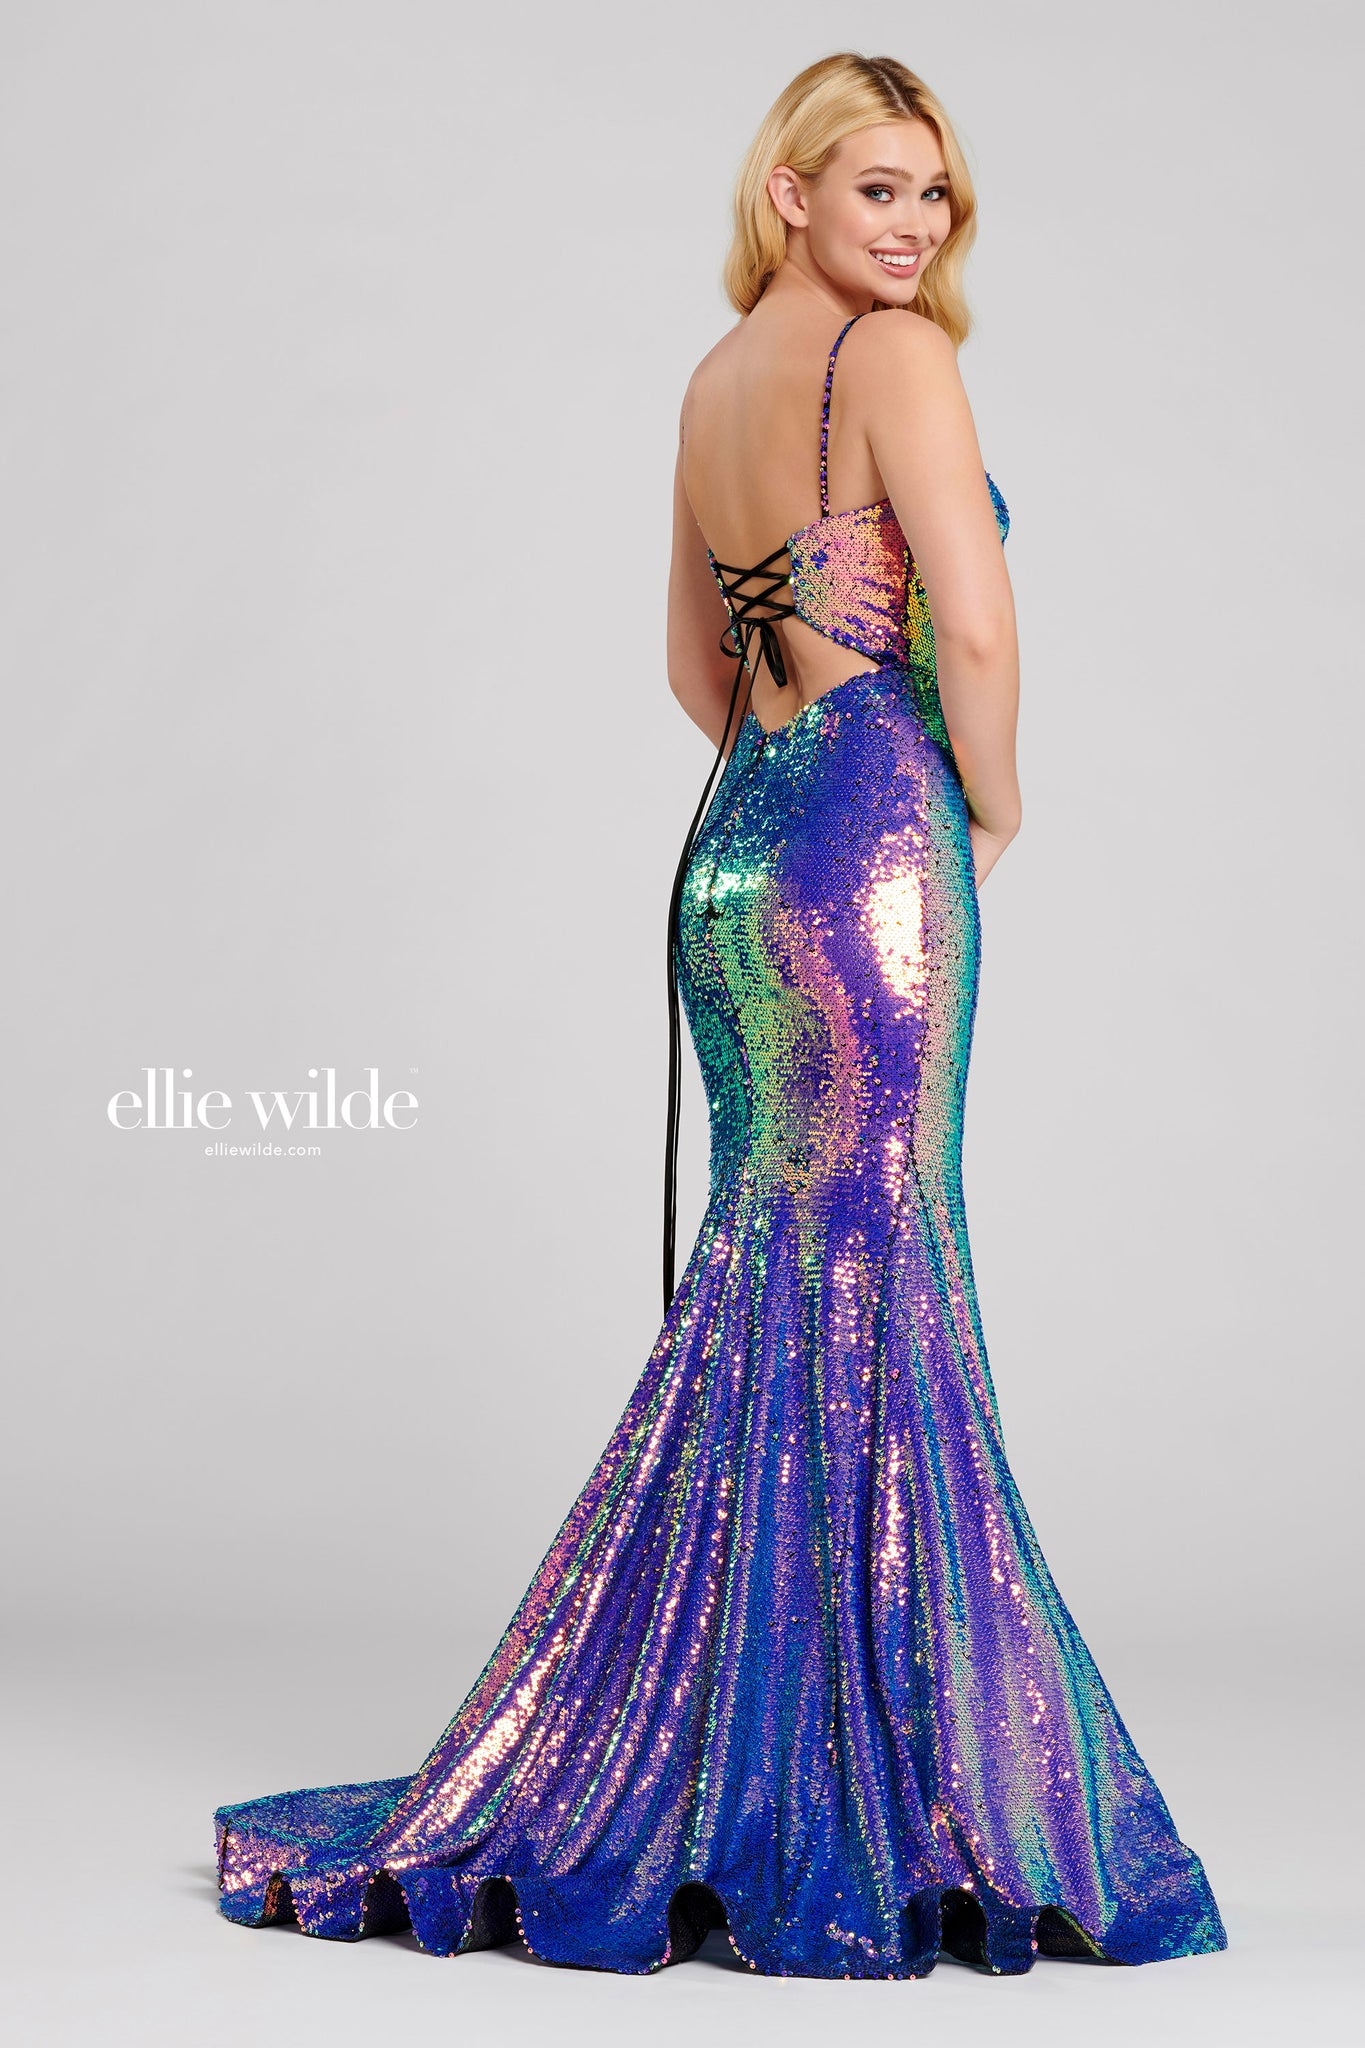 Ellie Wilde Mermaid Sequin Gown - Gissings Boutique